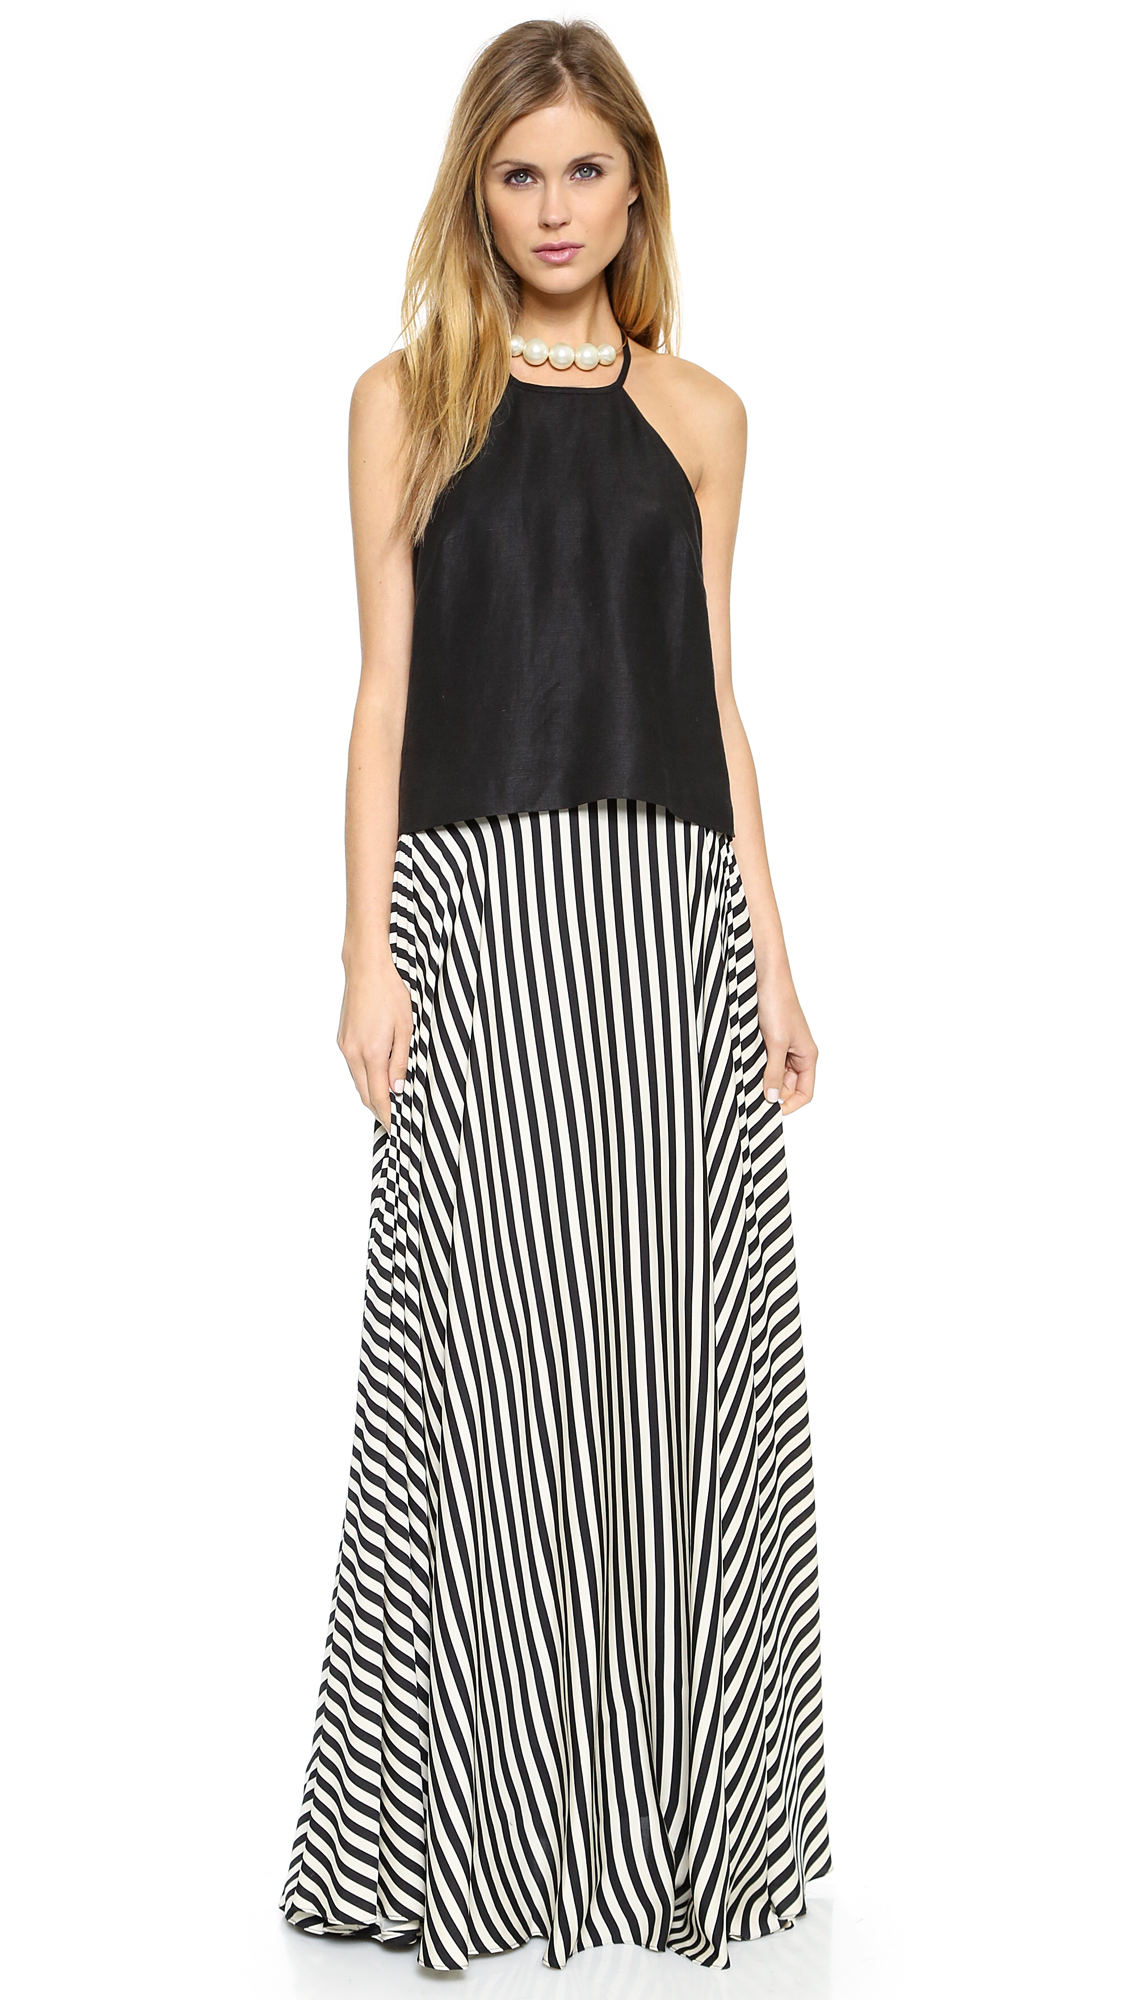 Milly Striped Maxi Skirt - Black/White in Black | Lyst